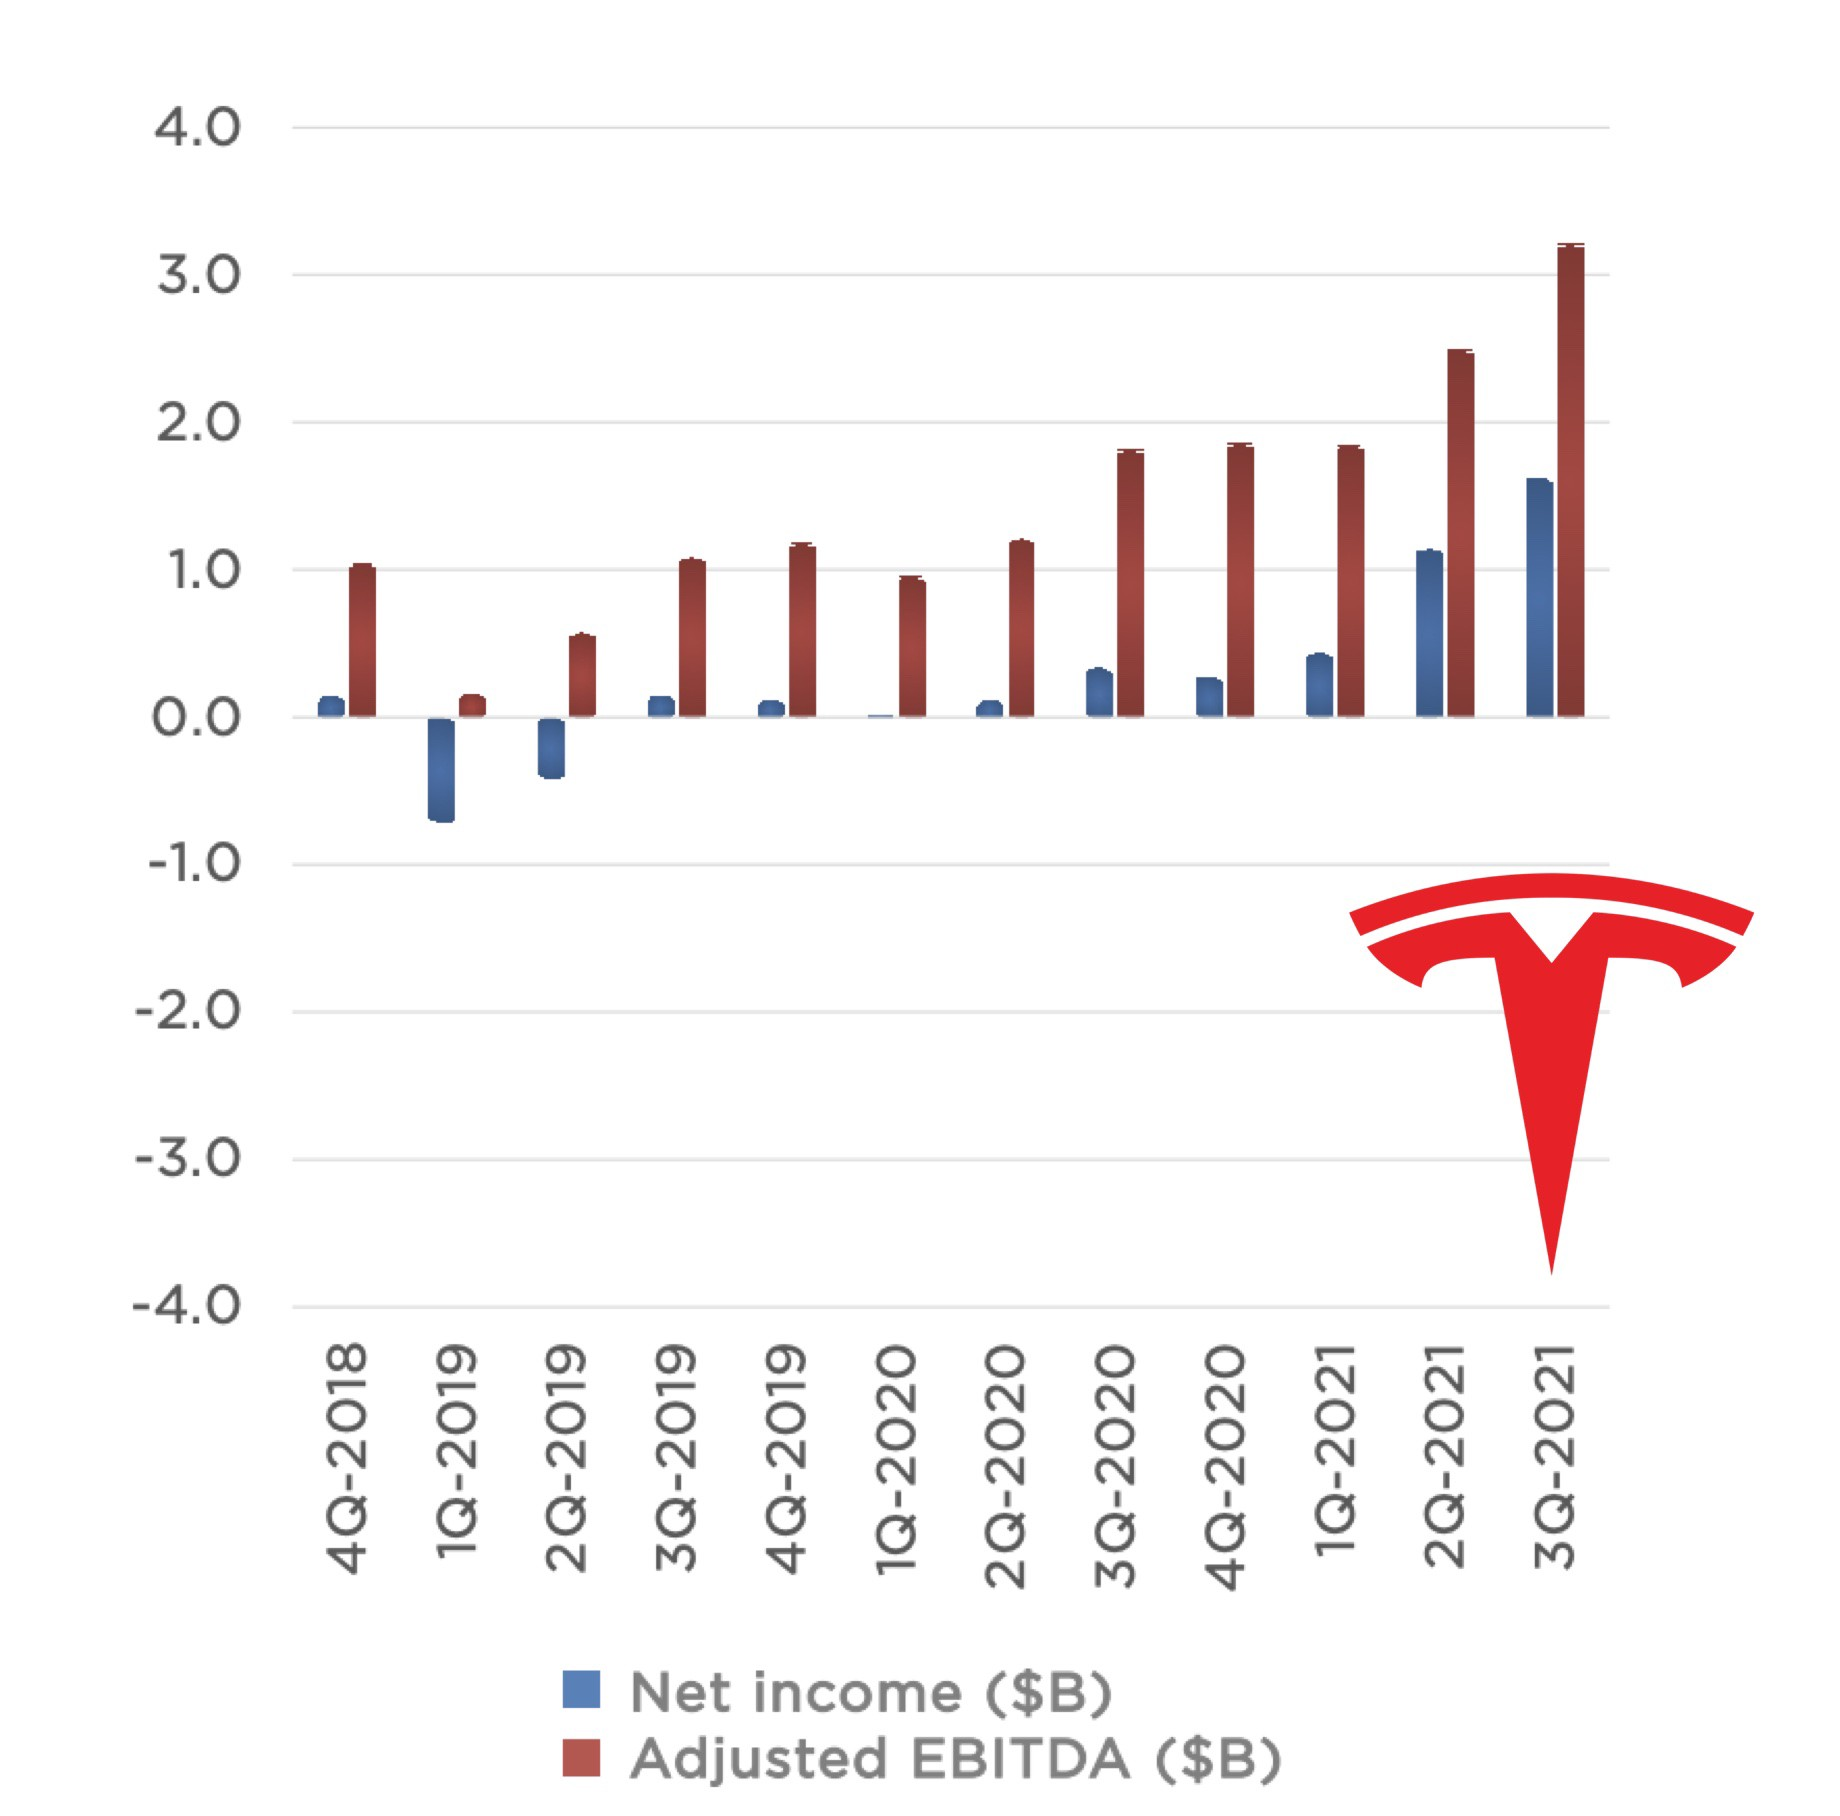 IMAGE: A bar graph with Tesla's financial results (net income and adjusted EBITDA) between 4Q-2018 and 3Q-2021.